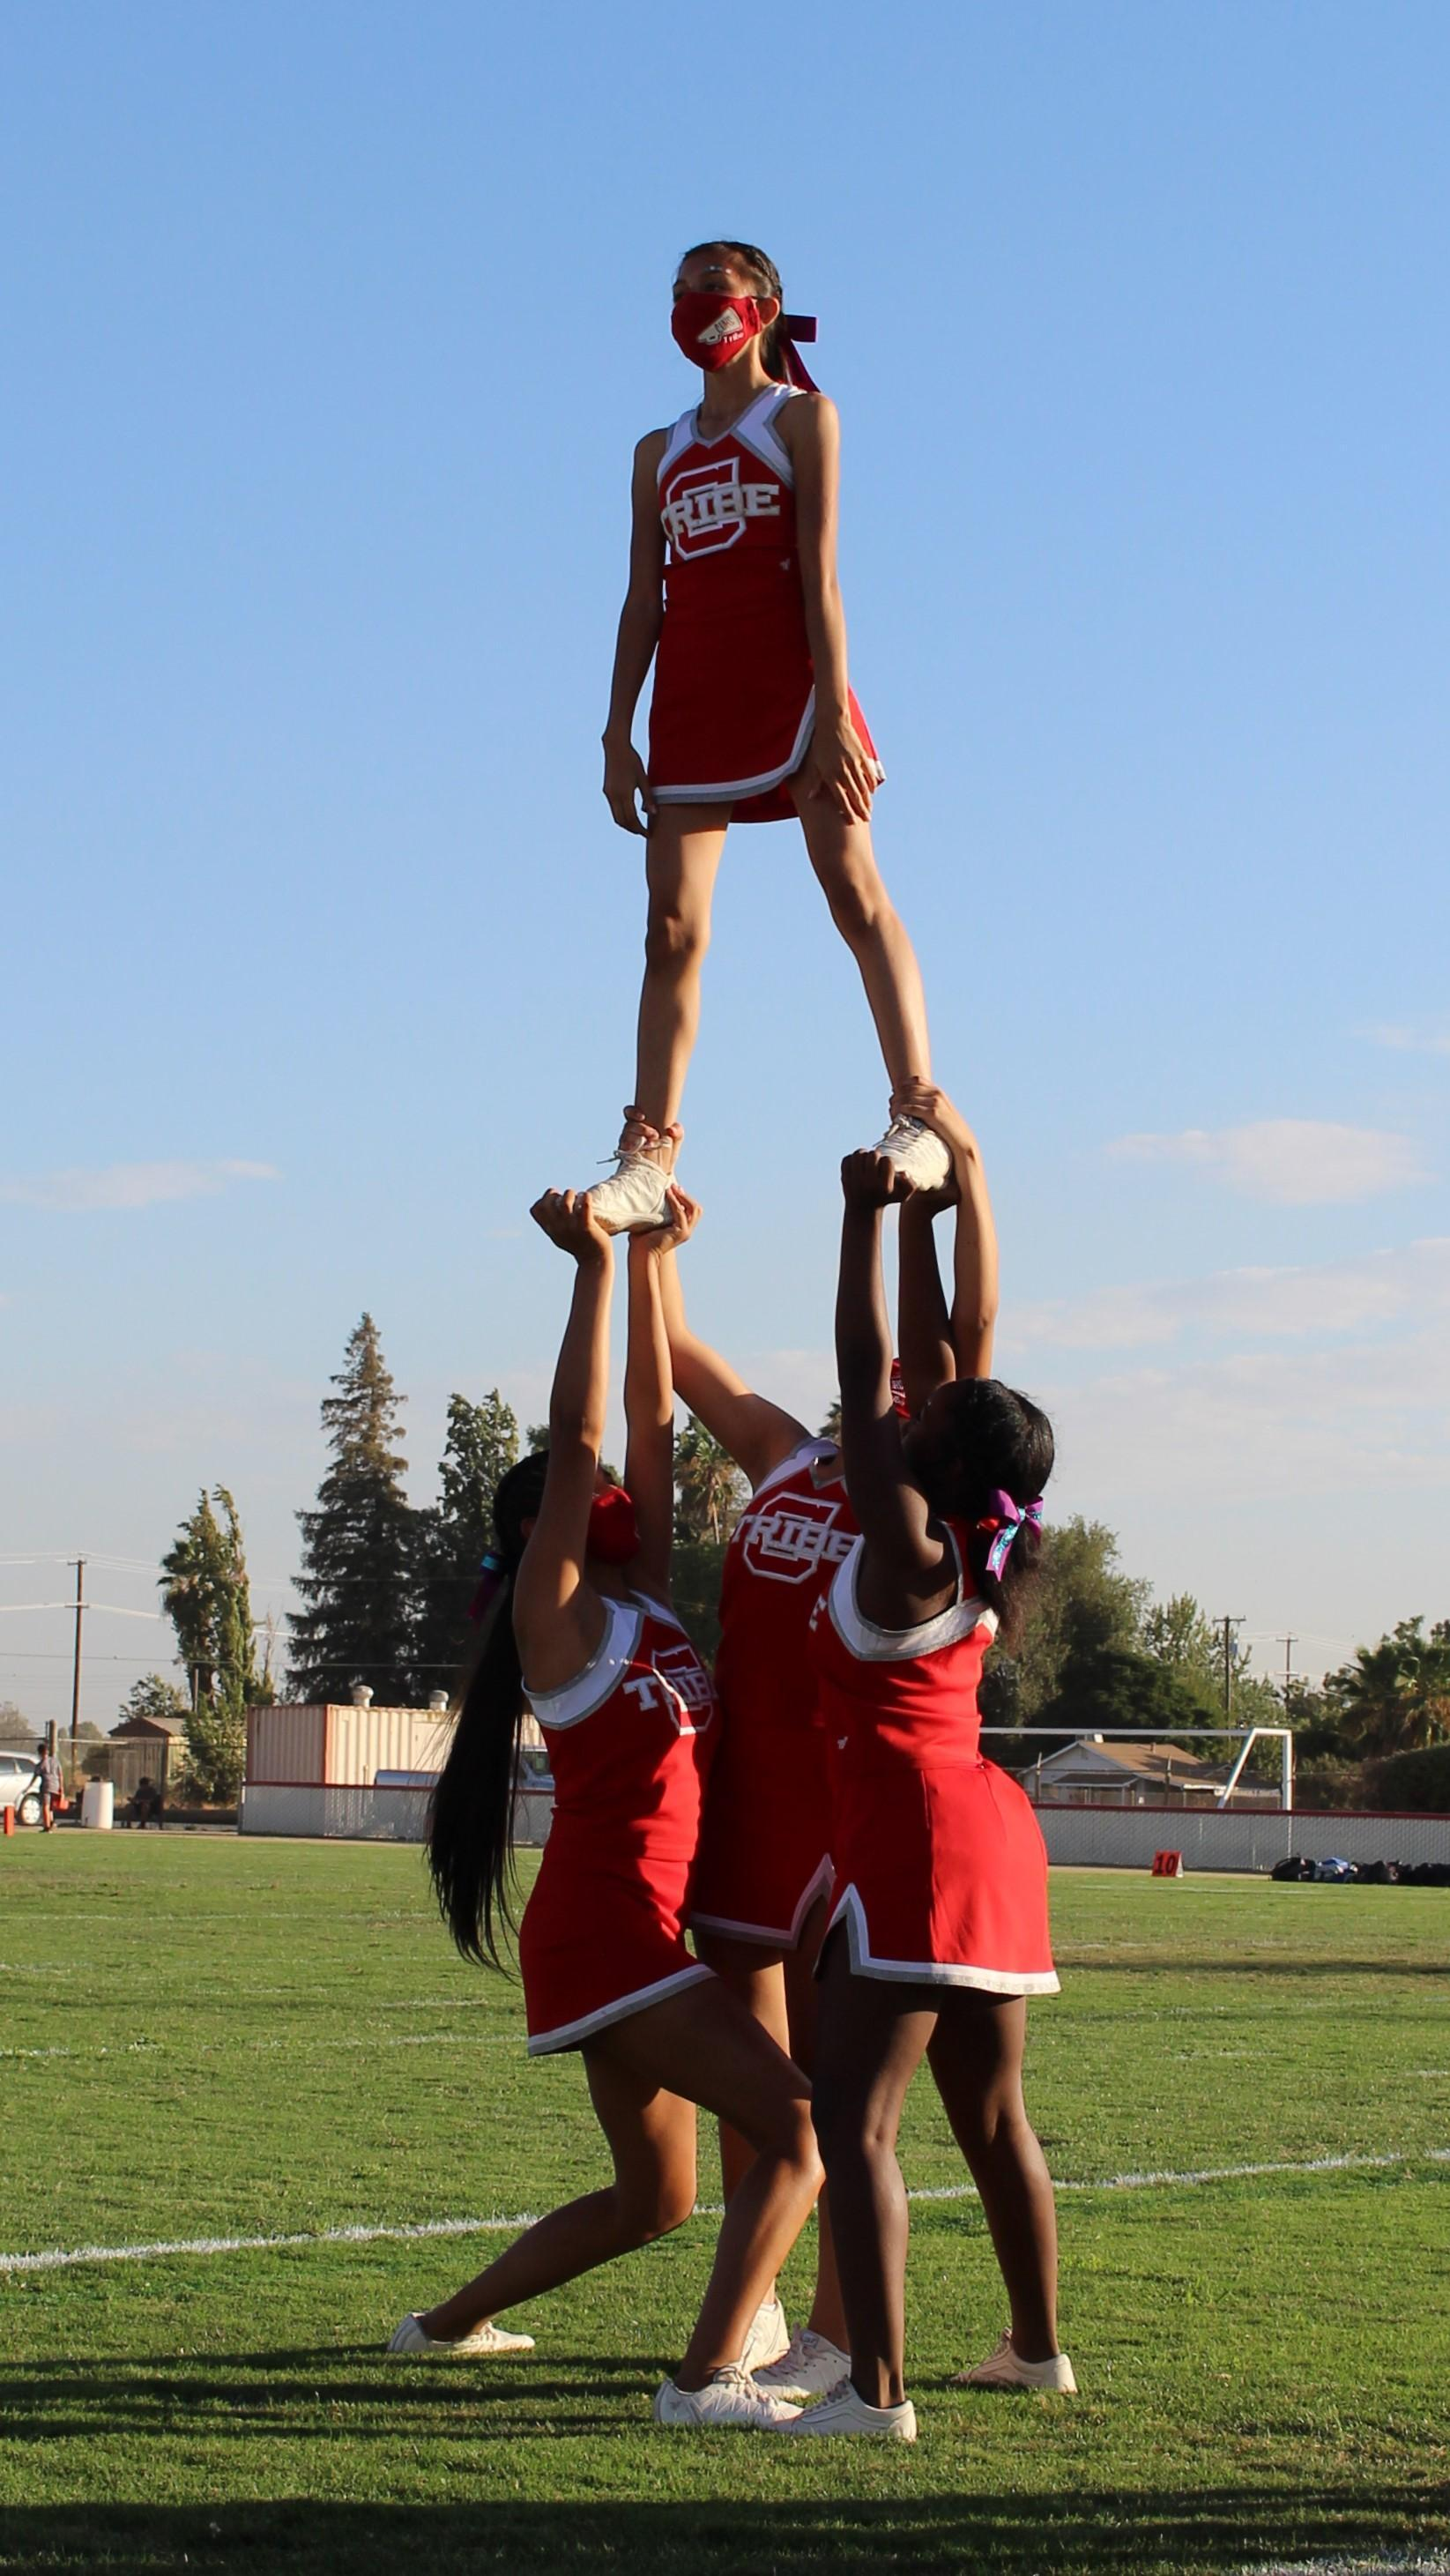 Cheerleaders cheering at the JV football game against central valley christian